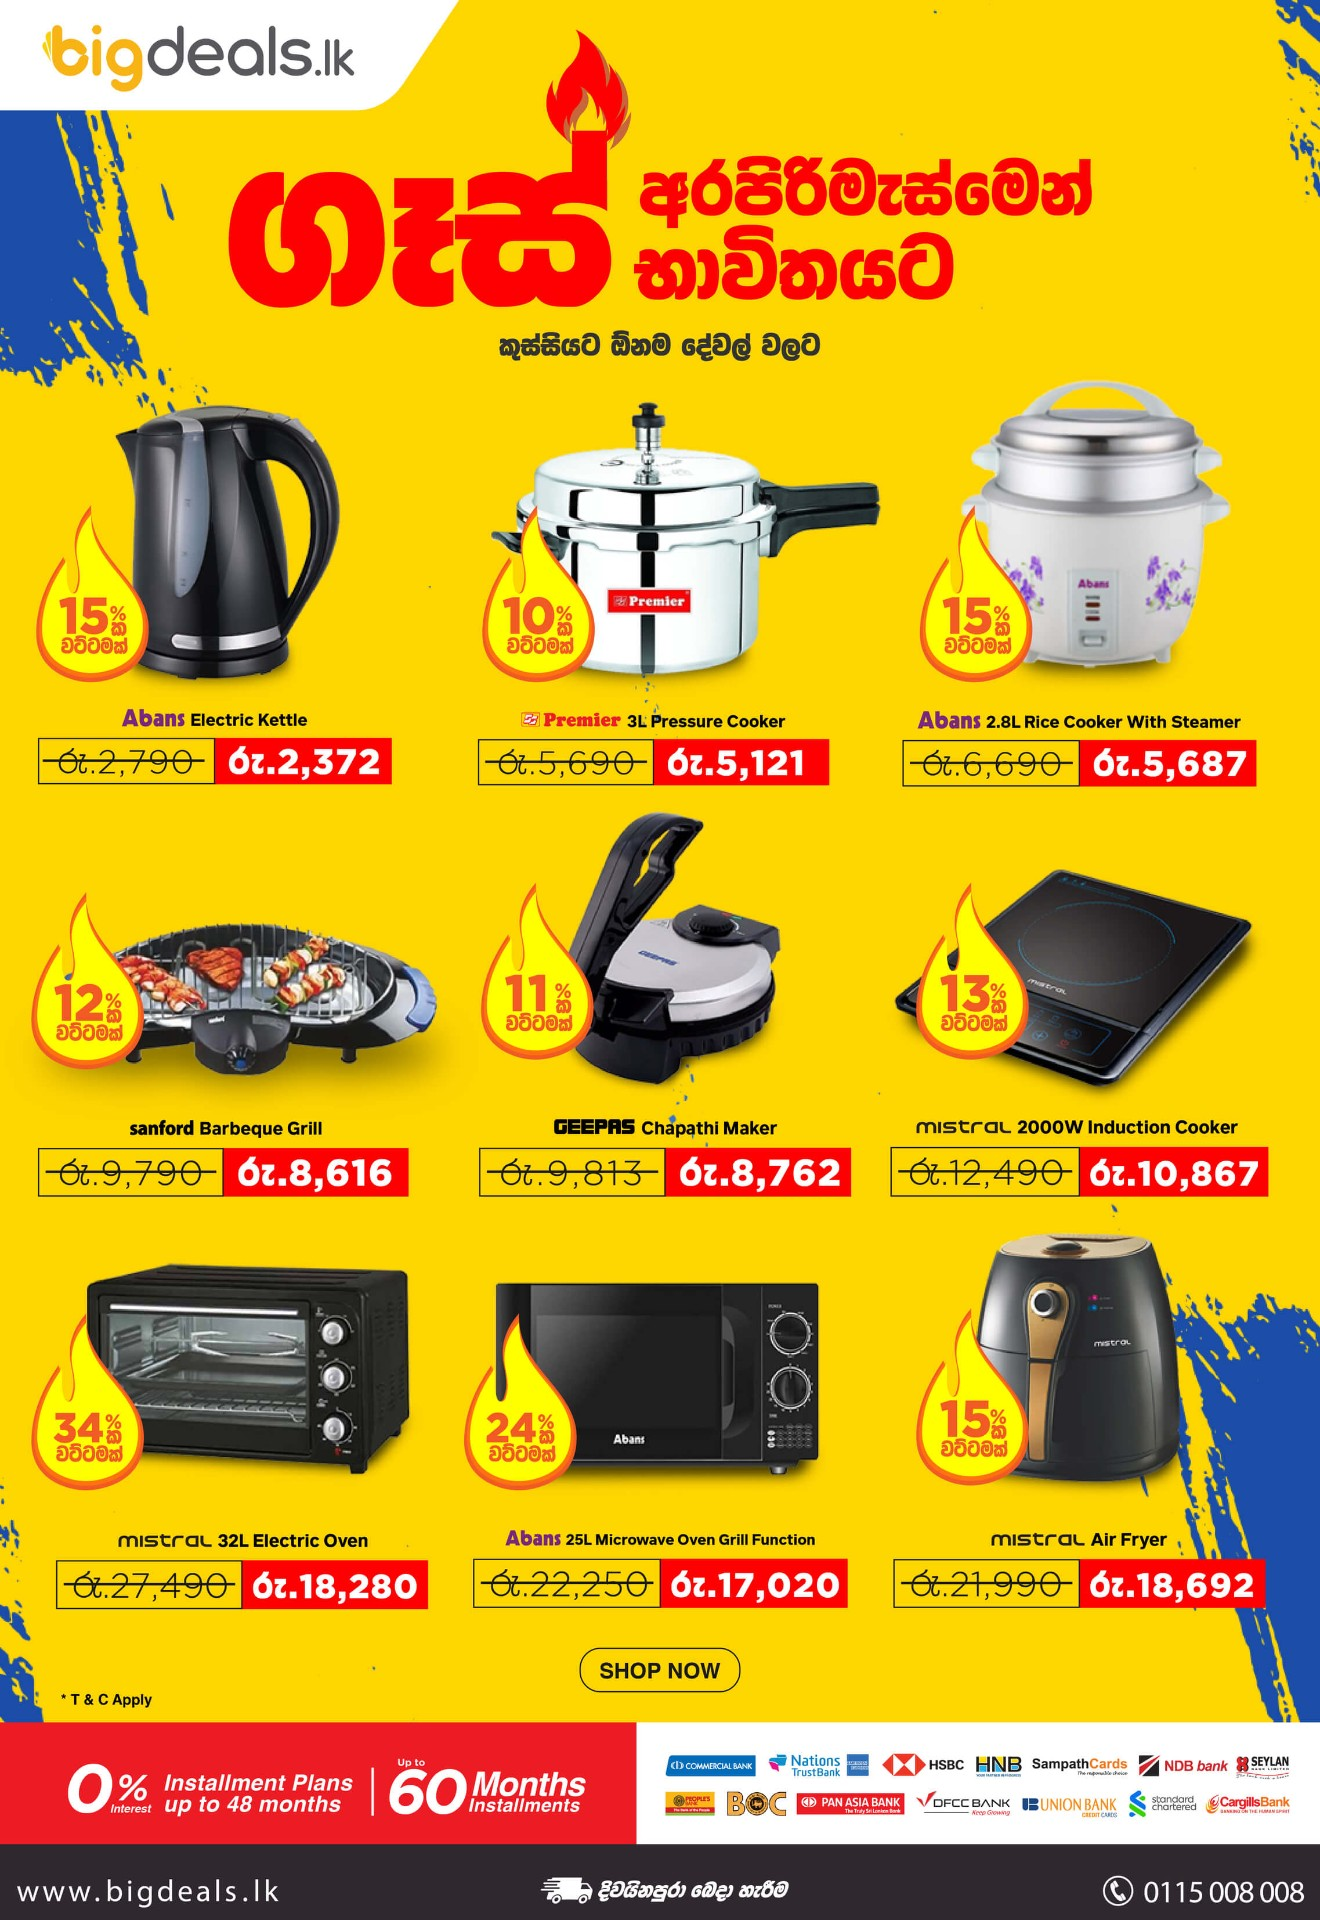 No gas for cooking? Switch to electric appliances with up to 34% OFF!